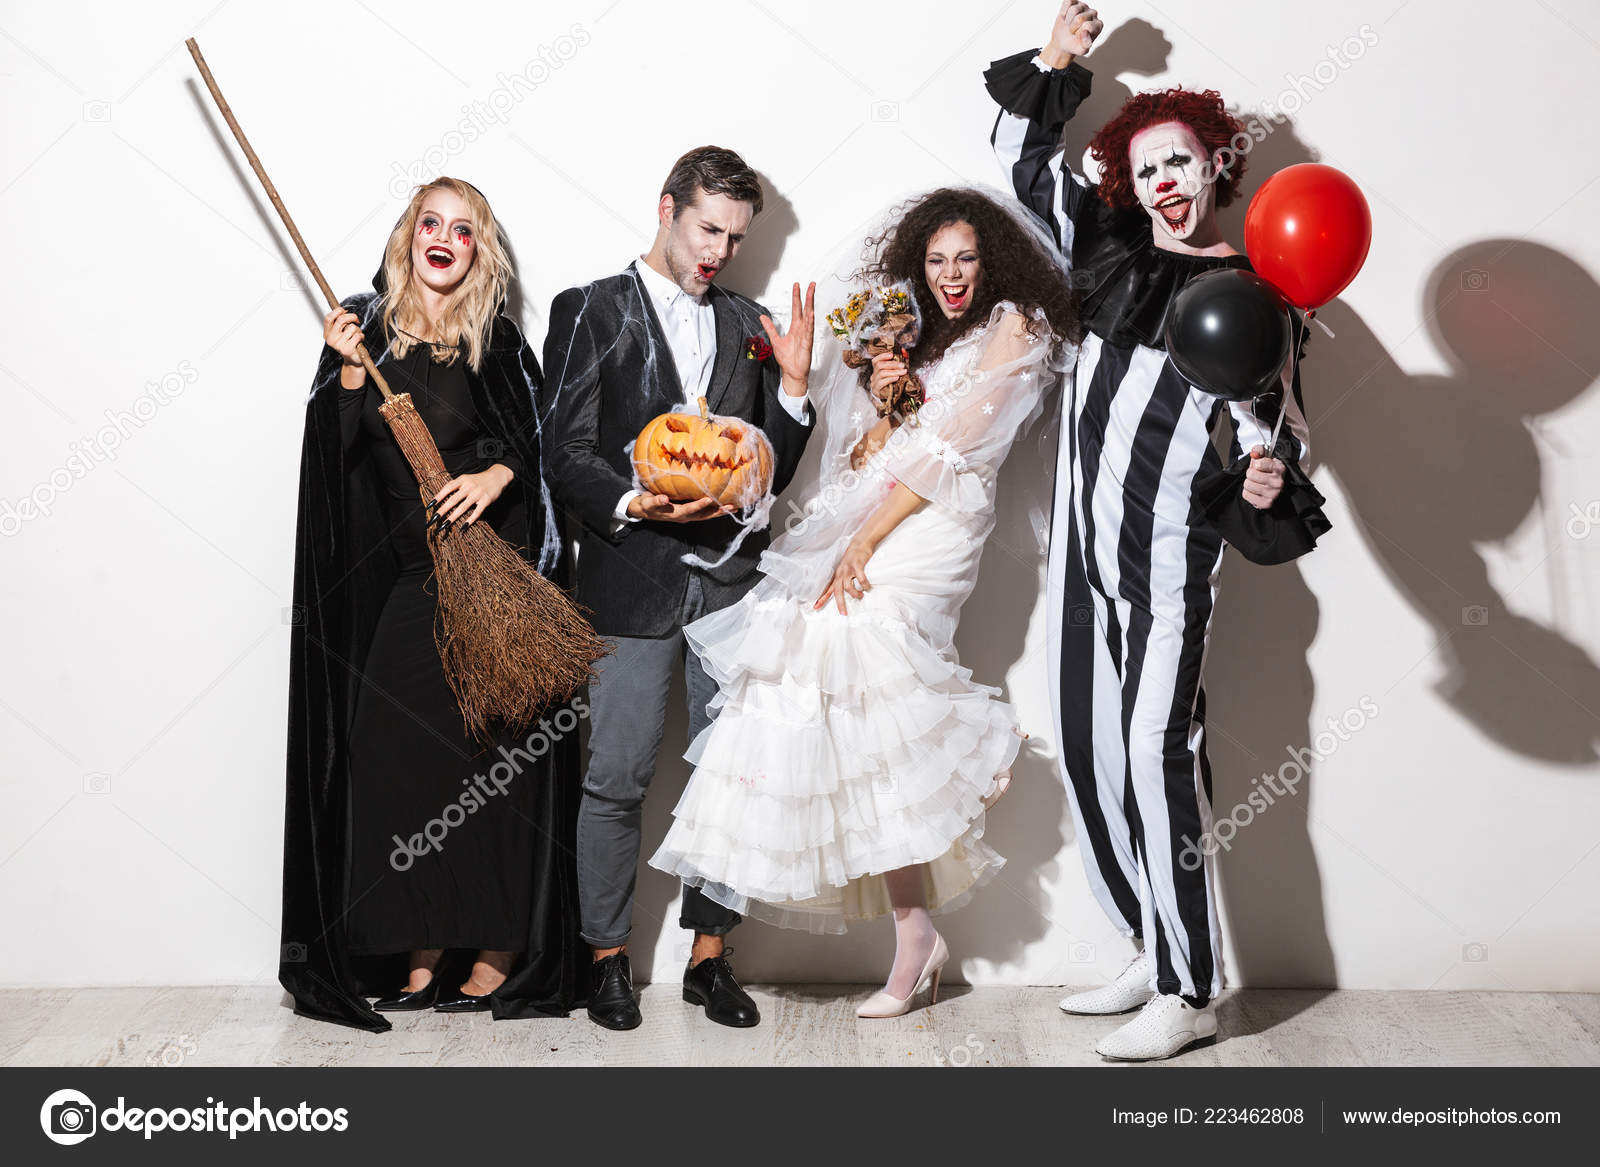 Halloween Group Costumes Scary.Group Cheerful Friends Dressed Scary Costumes Celebrating